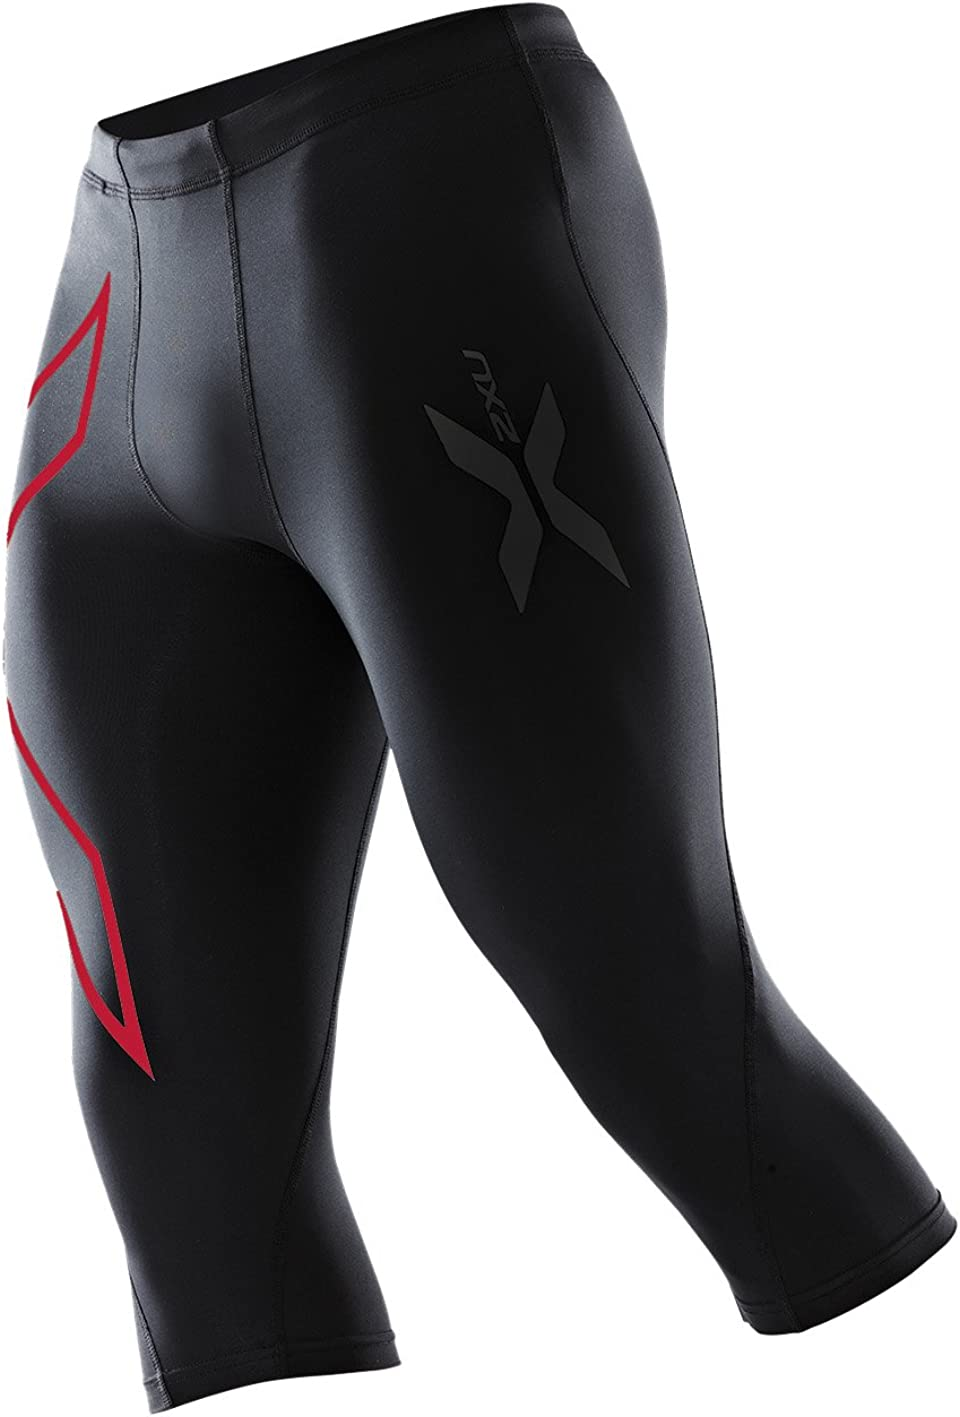 2XU Men's Thermal 3 safety 4 Compression Manufacturer direct delivery Tights